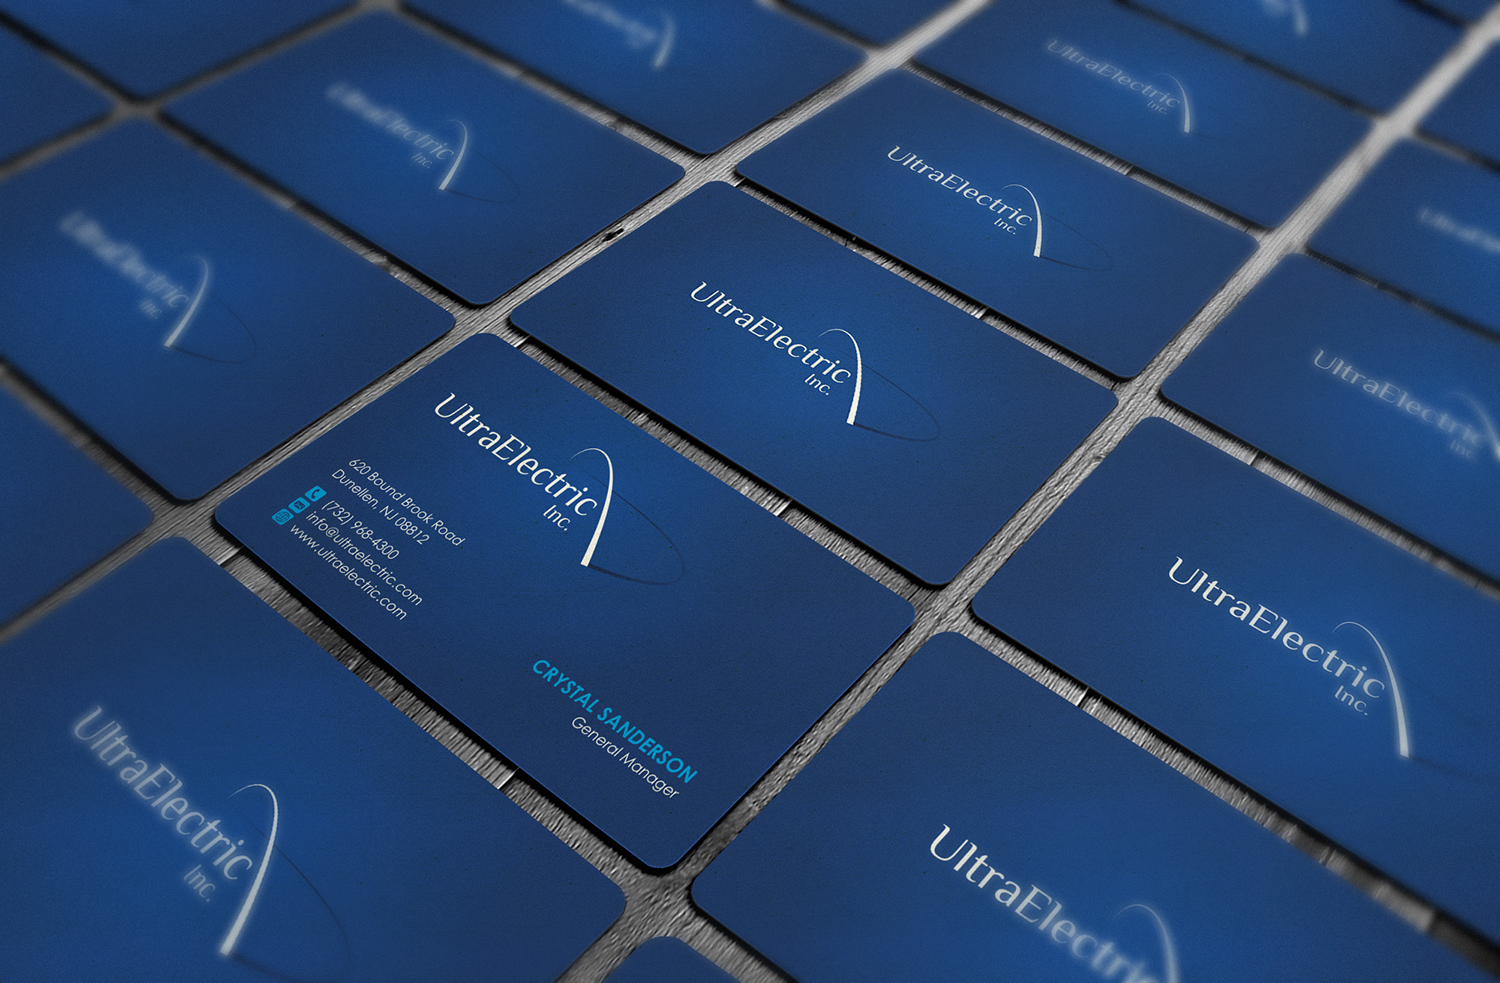 Modern Professional Business Card Design For Crystal Sanderson By Logodentity Design 9397421